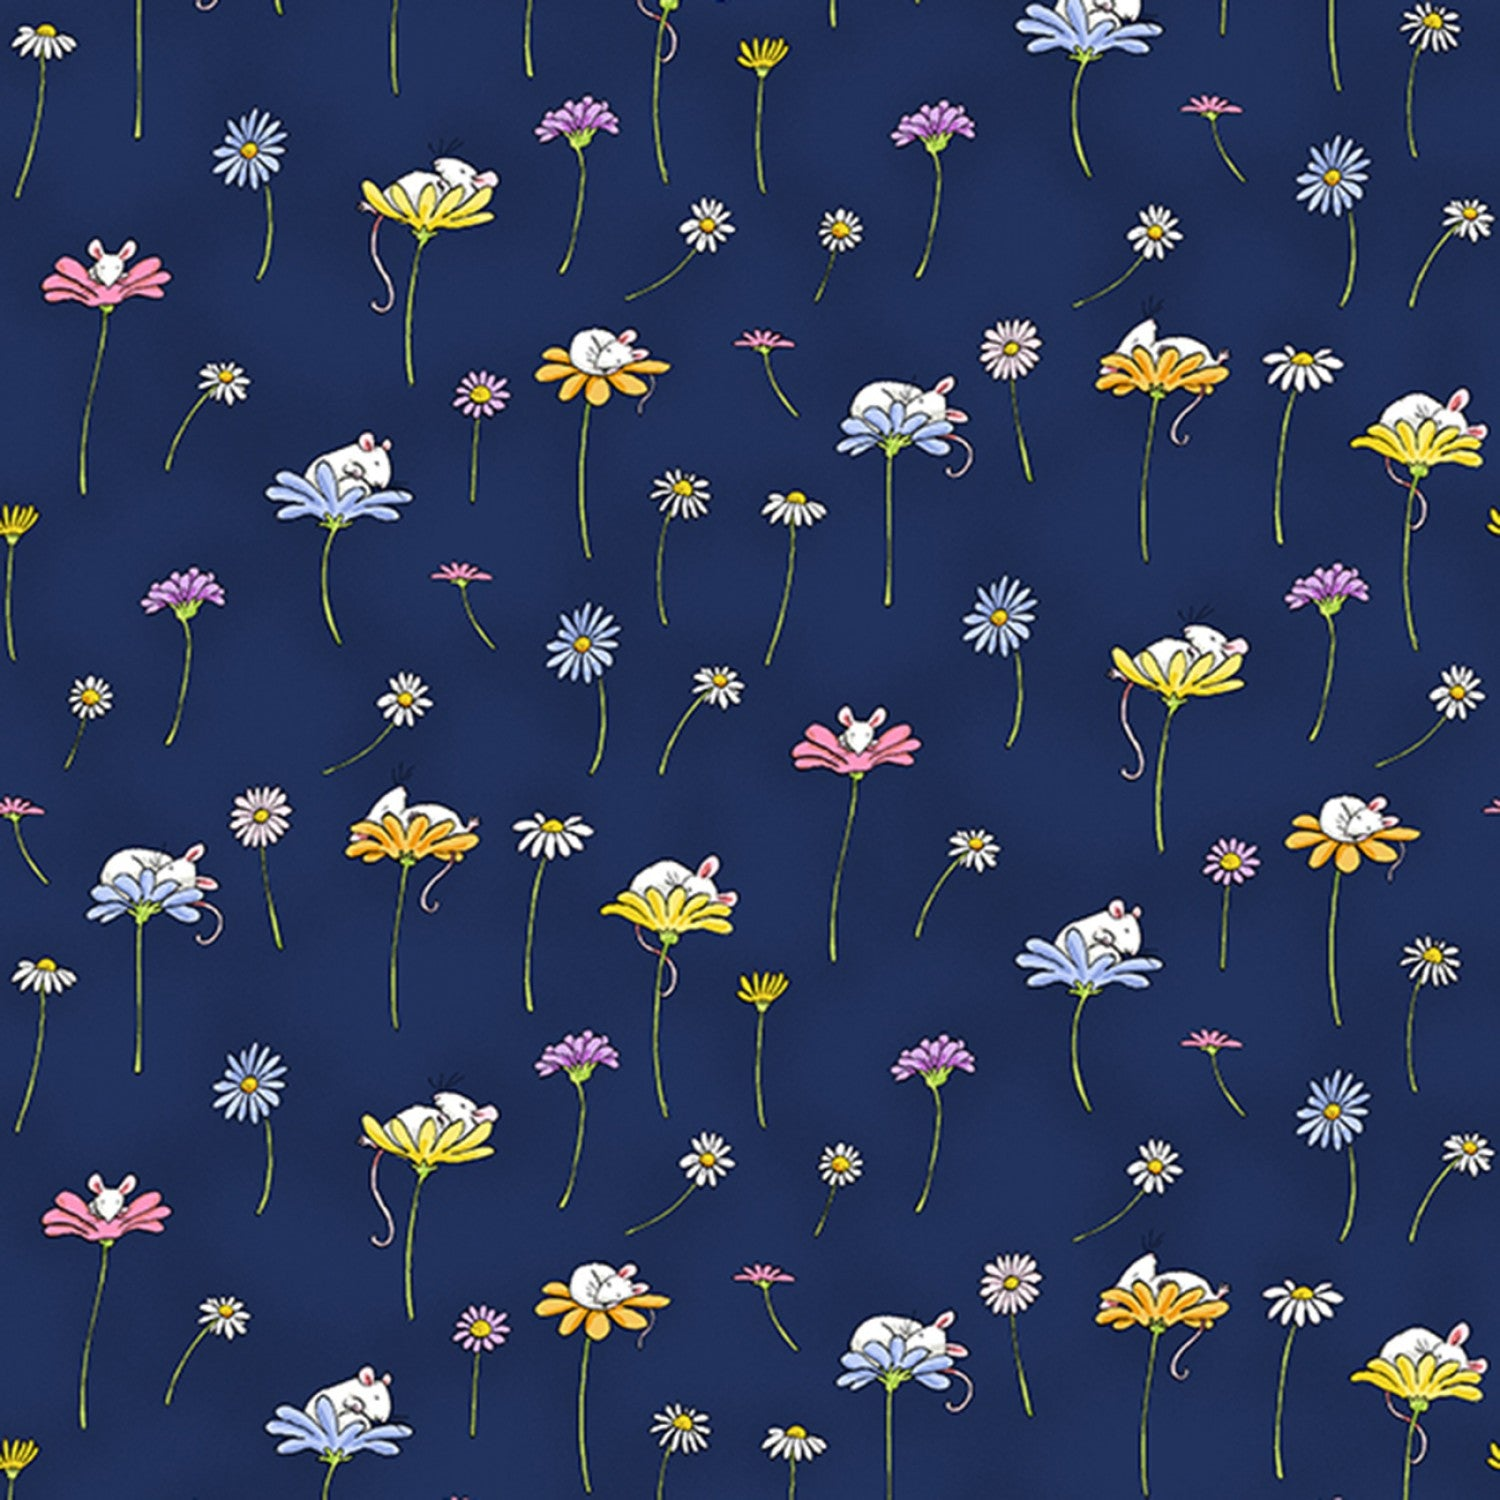 Light Navy Daisy and Mouse  Daisy Daisy  Cotton Fabric by Clothworks Y2654-93